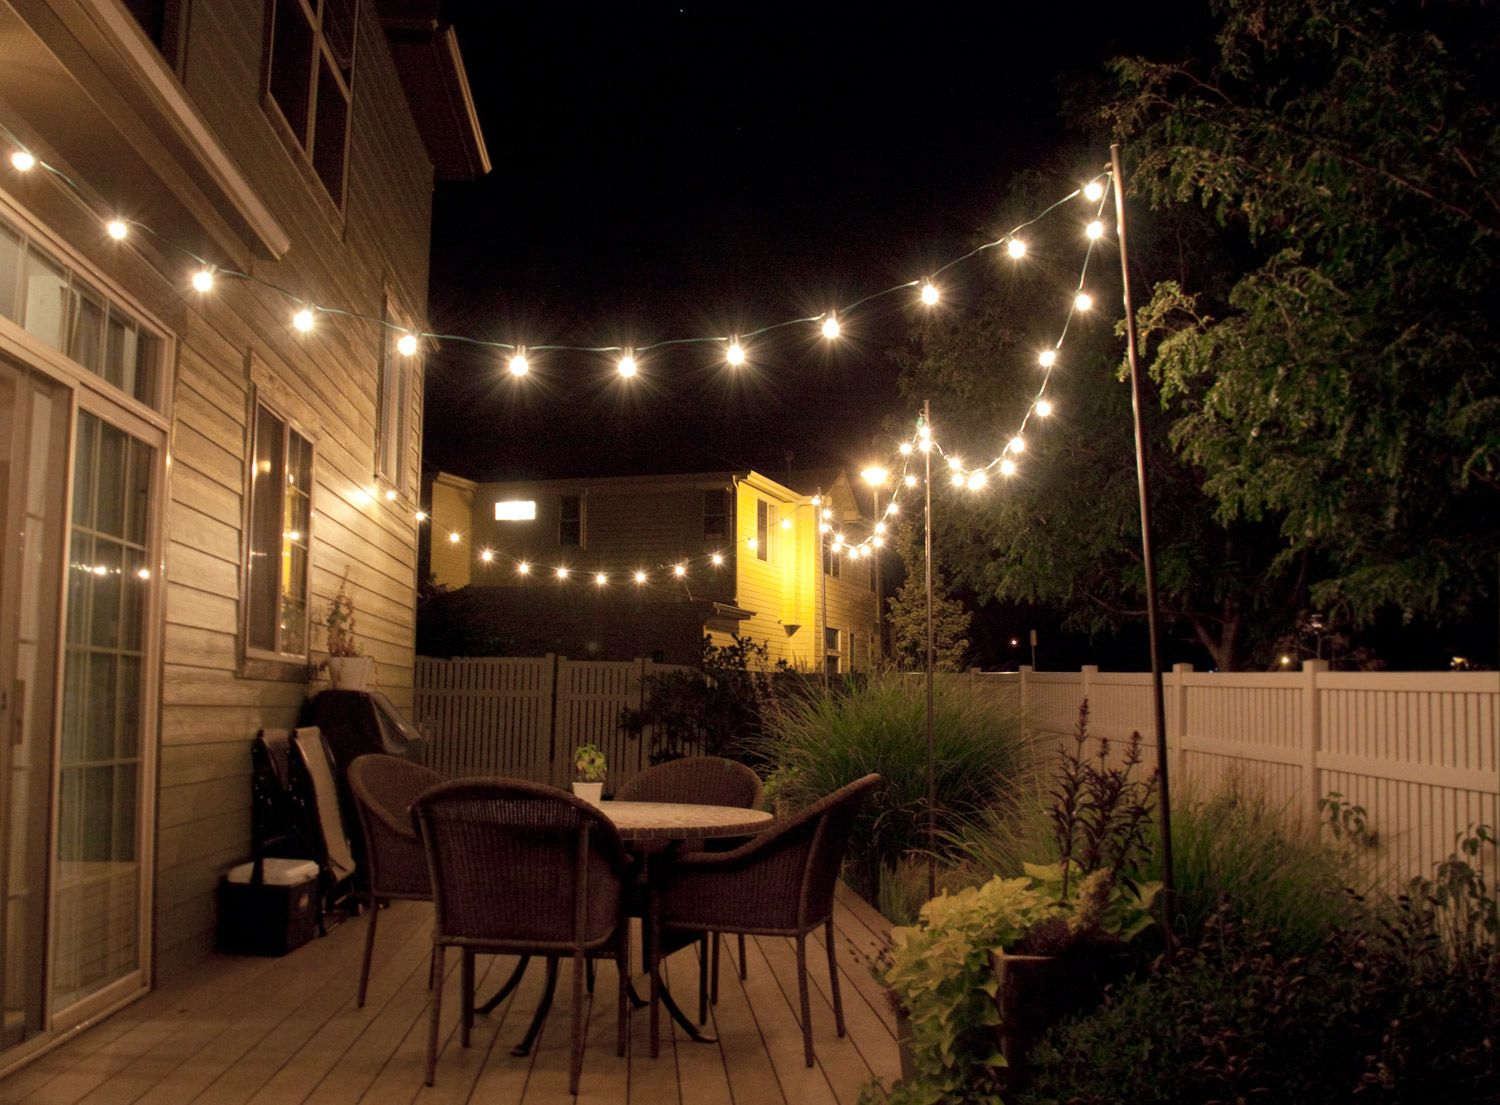 how to make inexpensive poles to hang string lights on - café ... - Patio Lights String Ideas